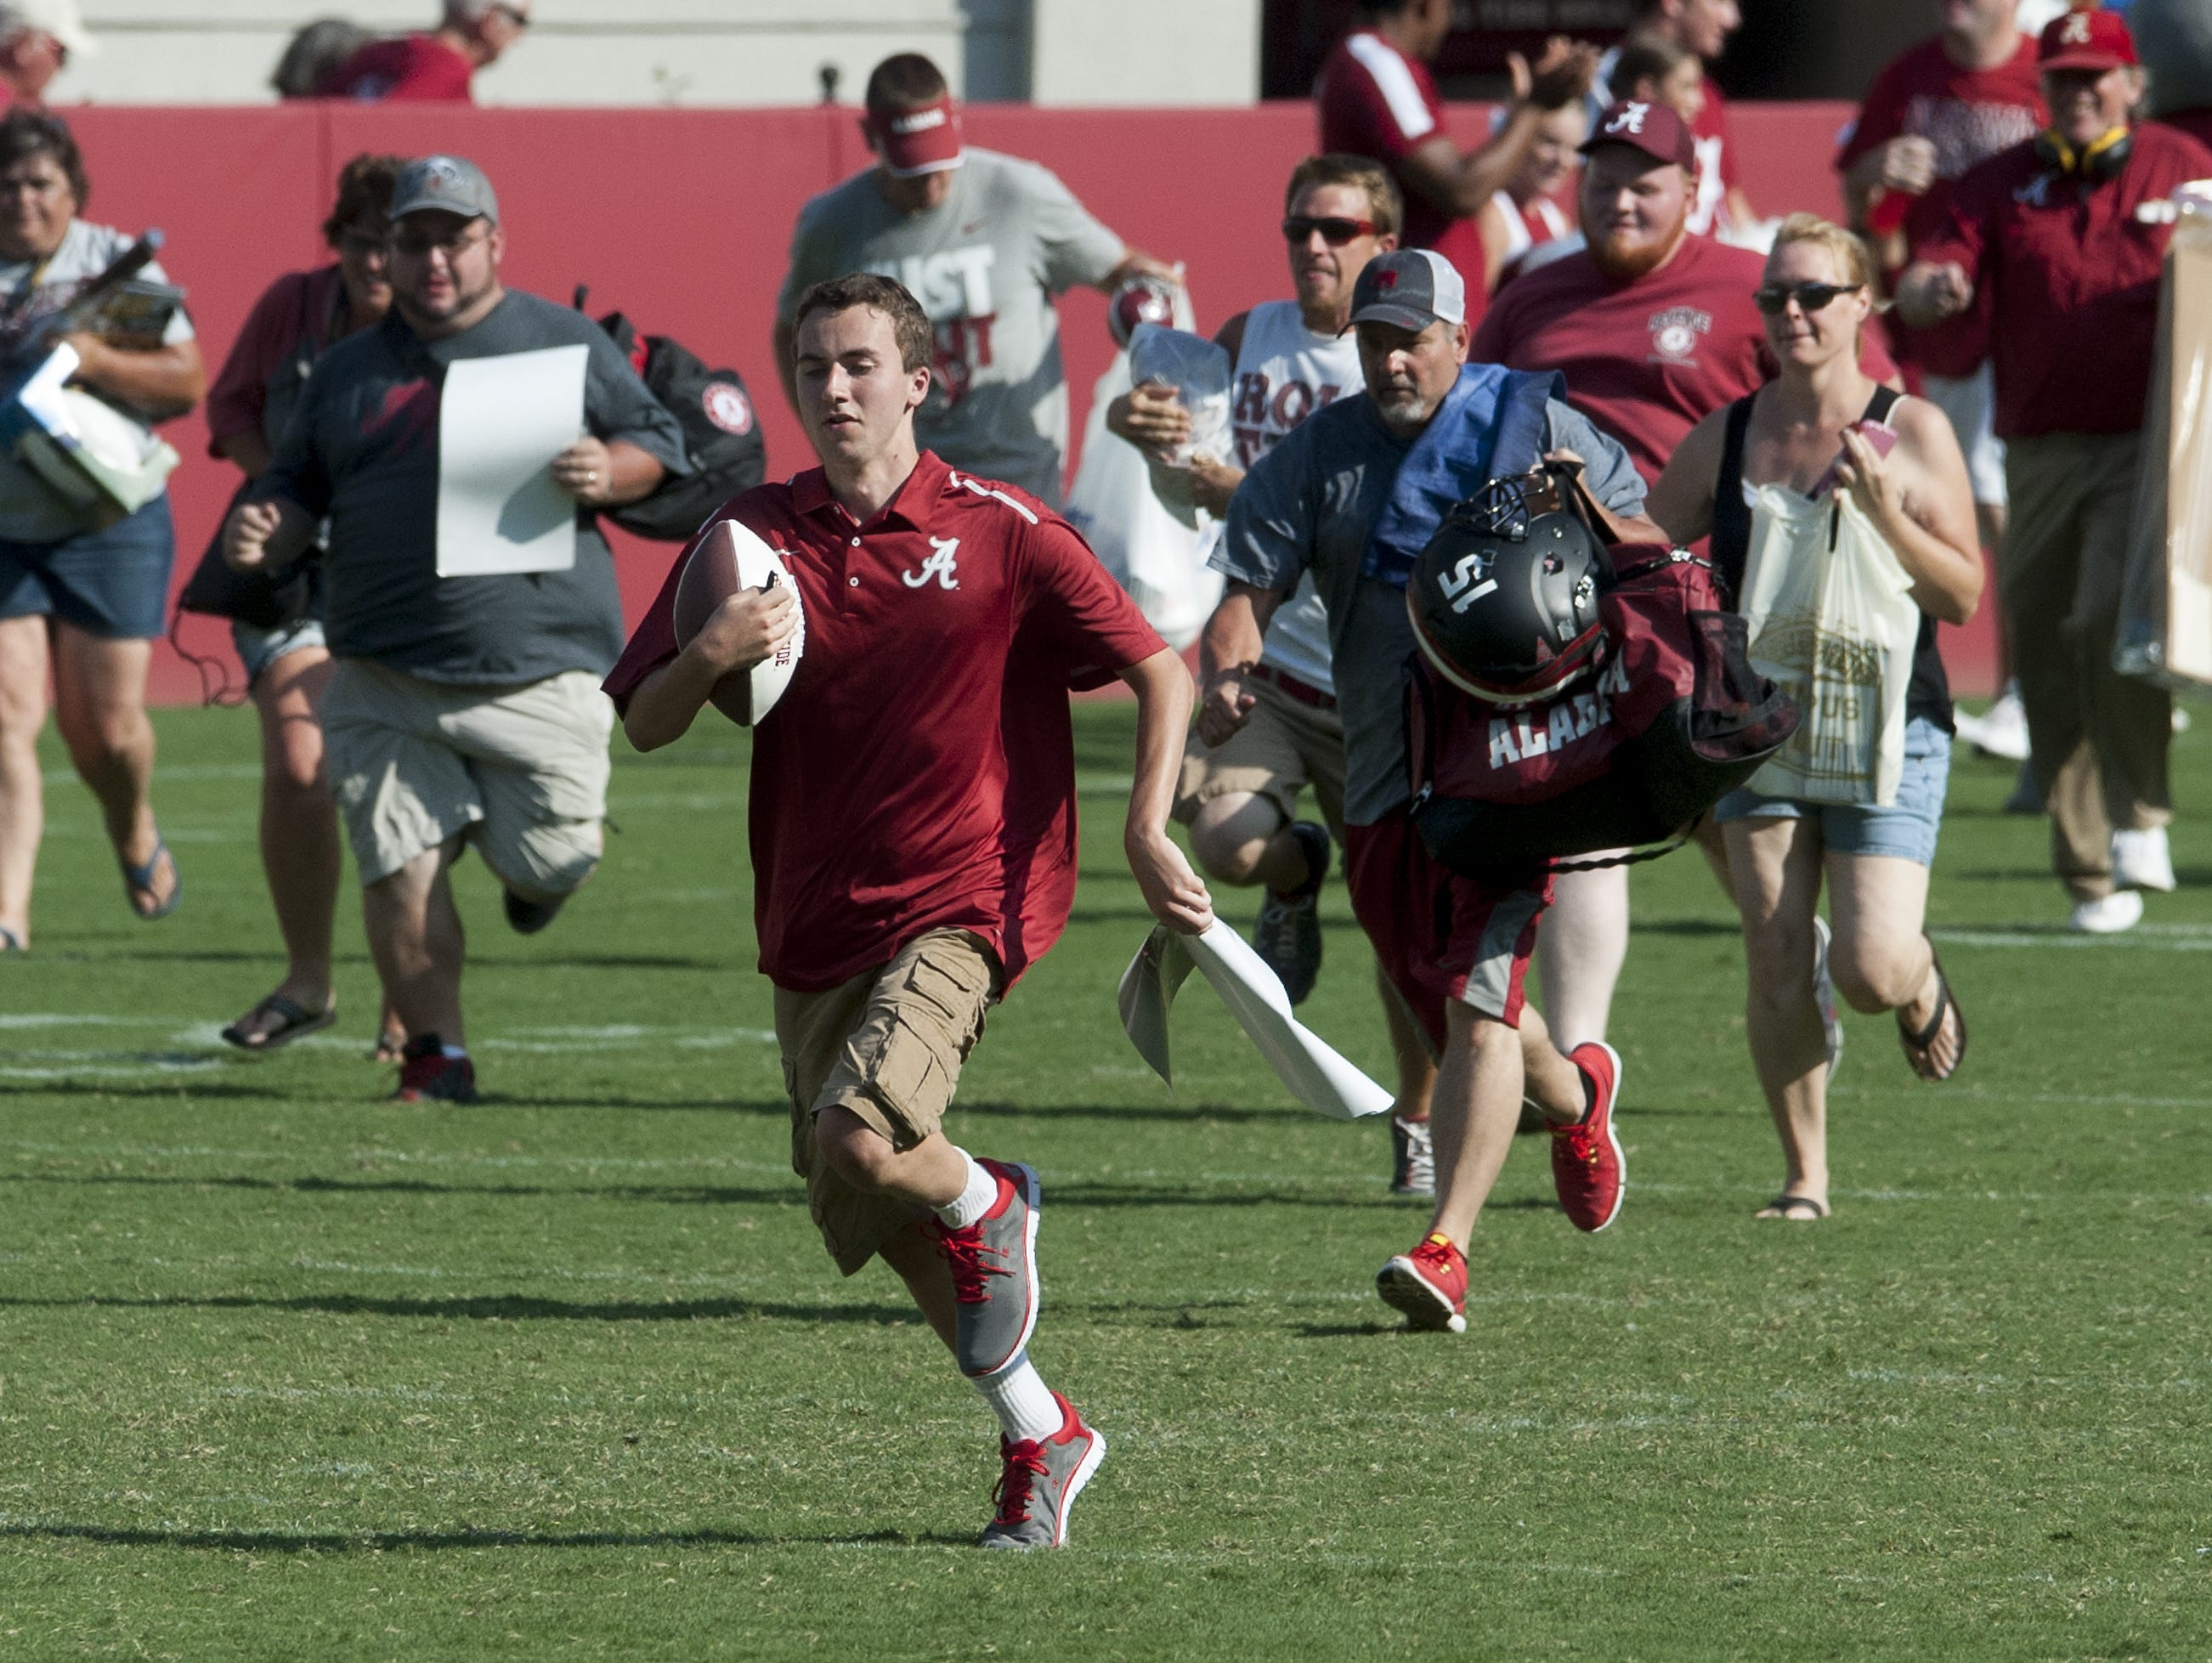 Fans race across the turf to get autographs during the University of Alabama fan day at Bryant-Denny Stadium in Tuscaloosa, Ala., on Sunday August 9, 2015.